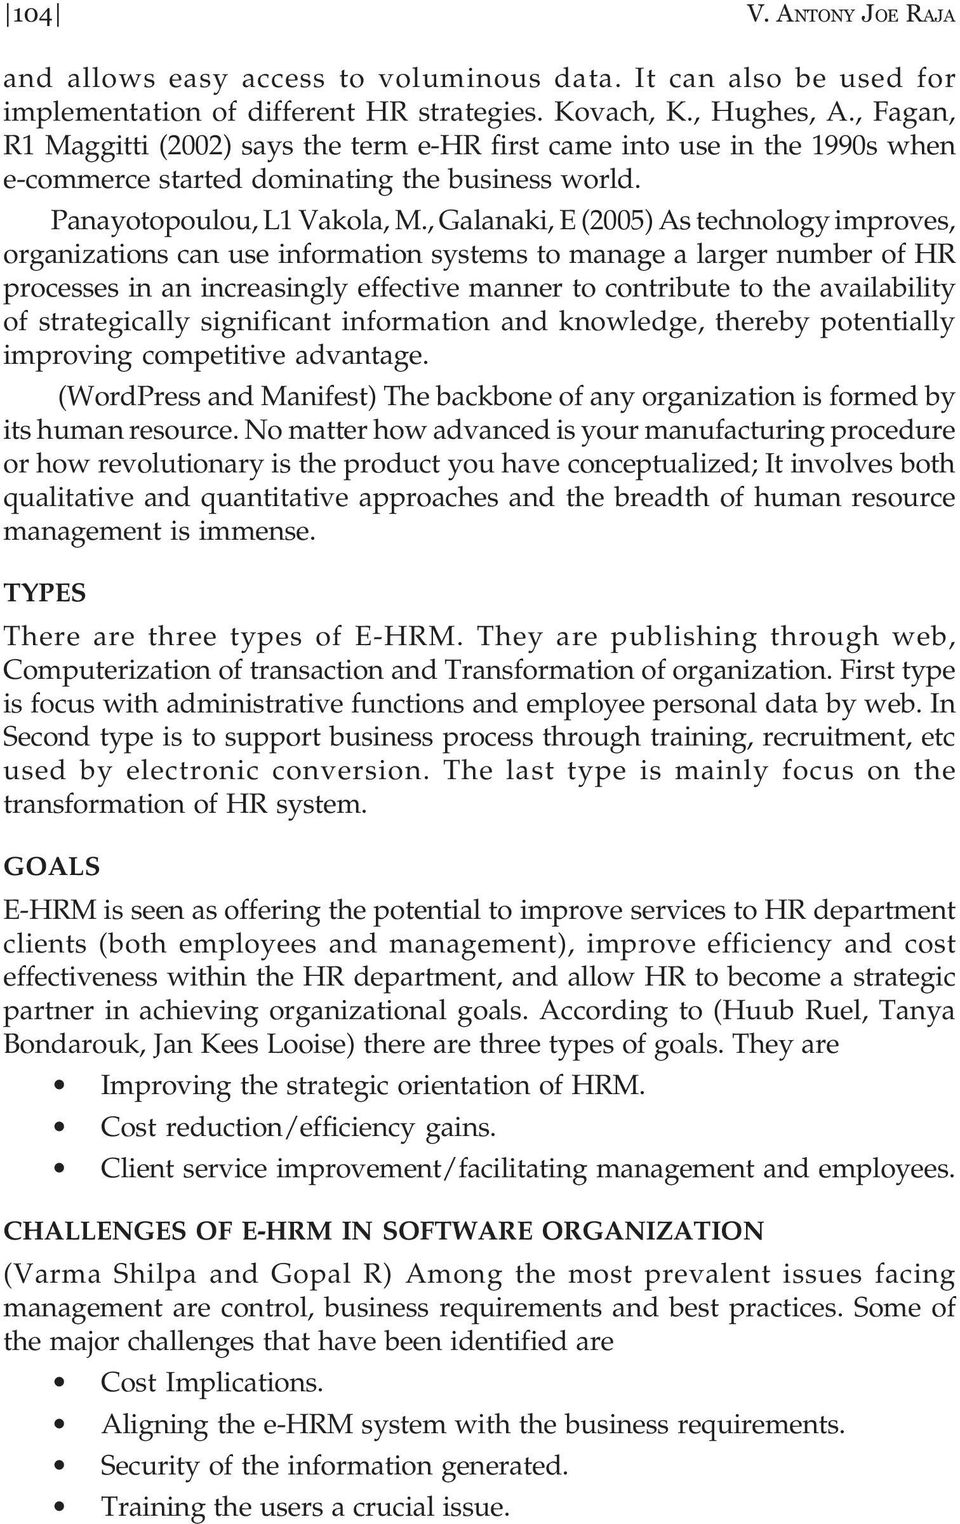 , Galanaki, E (2005) As technology improves, organizations can use information systems to manage a larger number of HR processes in an increasingly effective manner to contribute to the availability